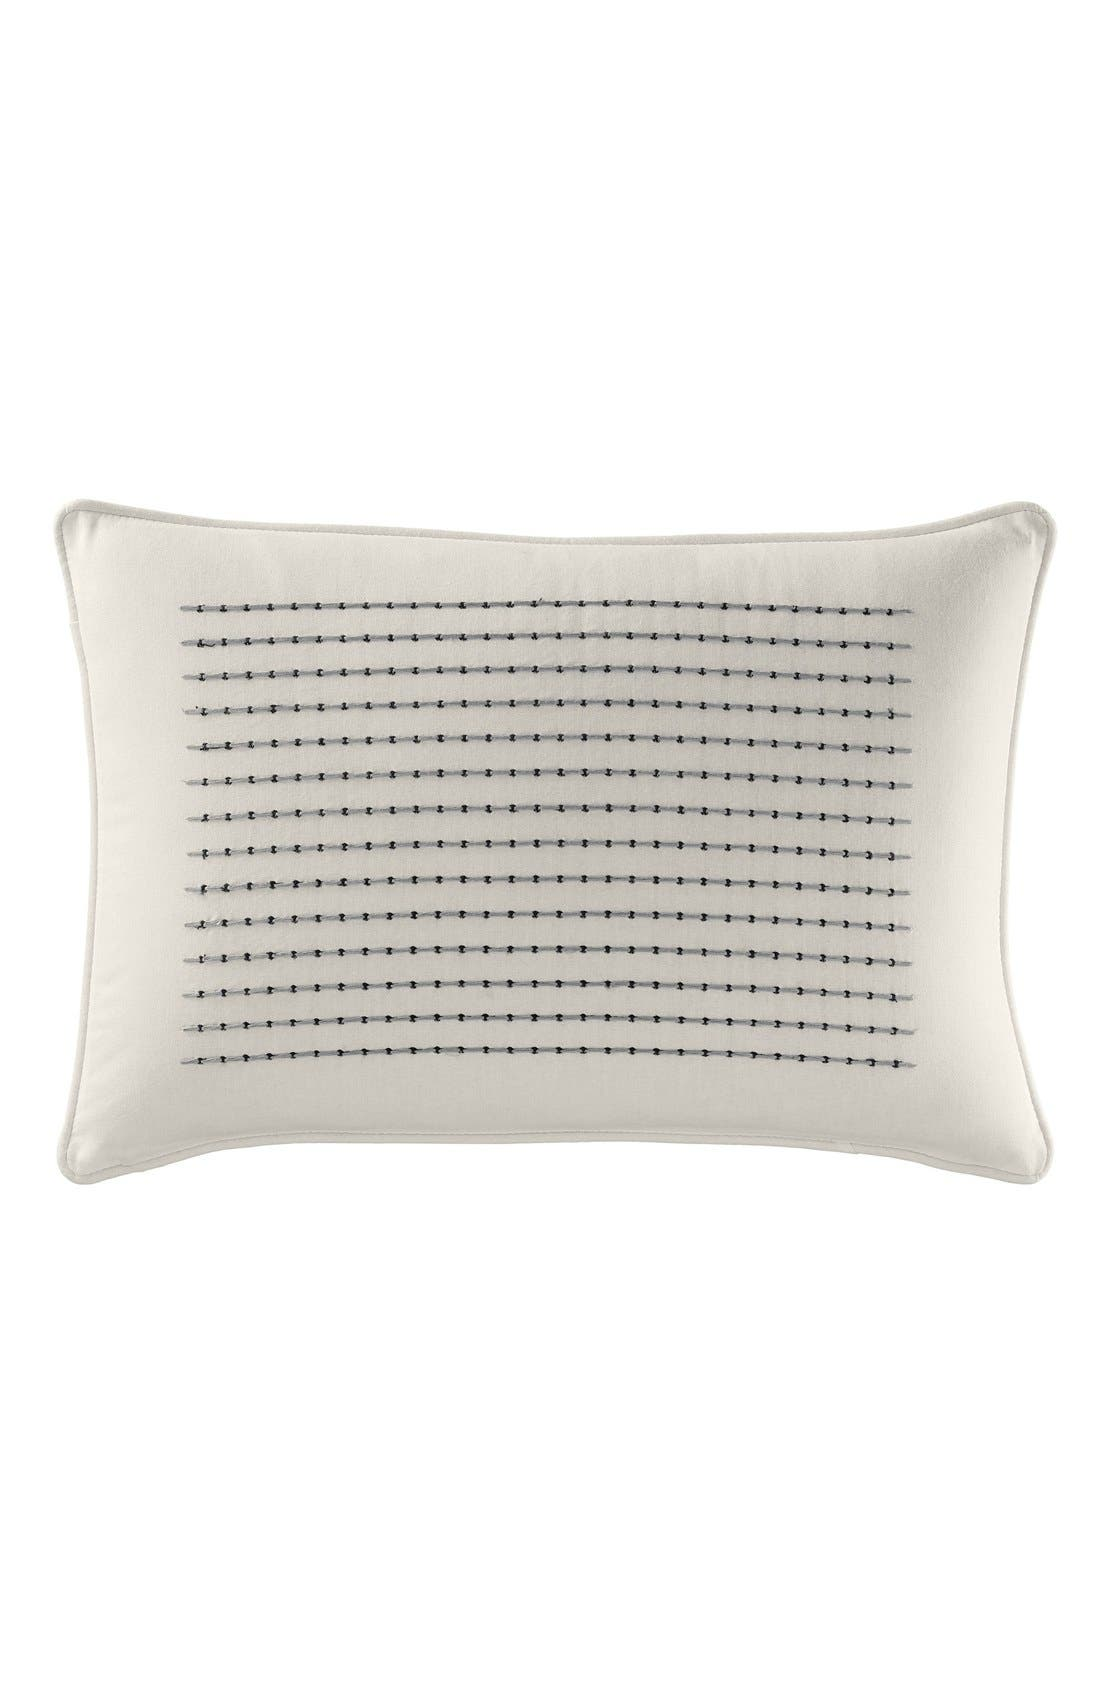 Caldwell Embroidered Pillow,                         Main,                         color, 100